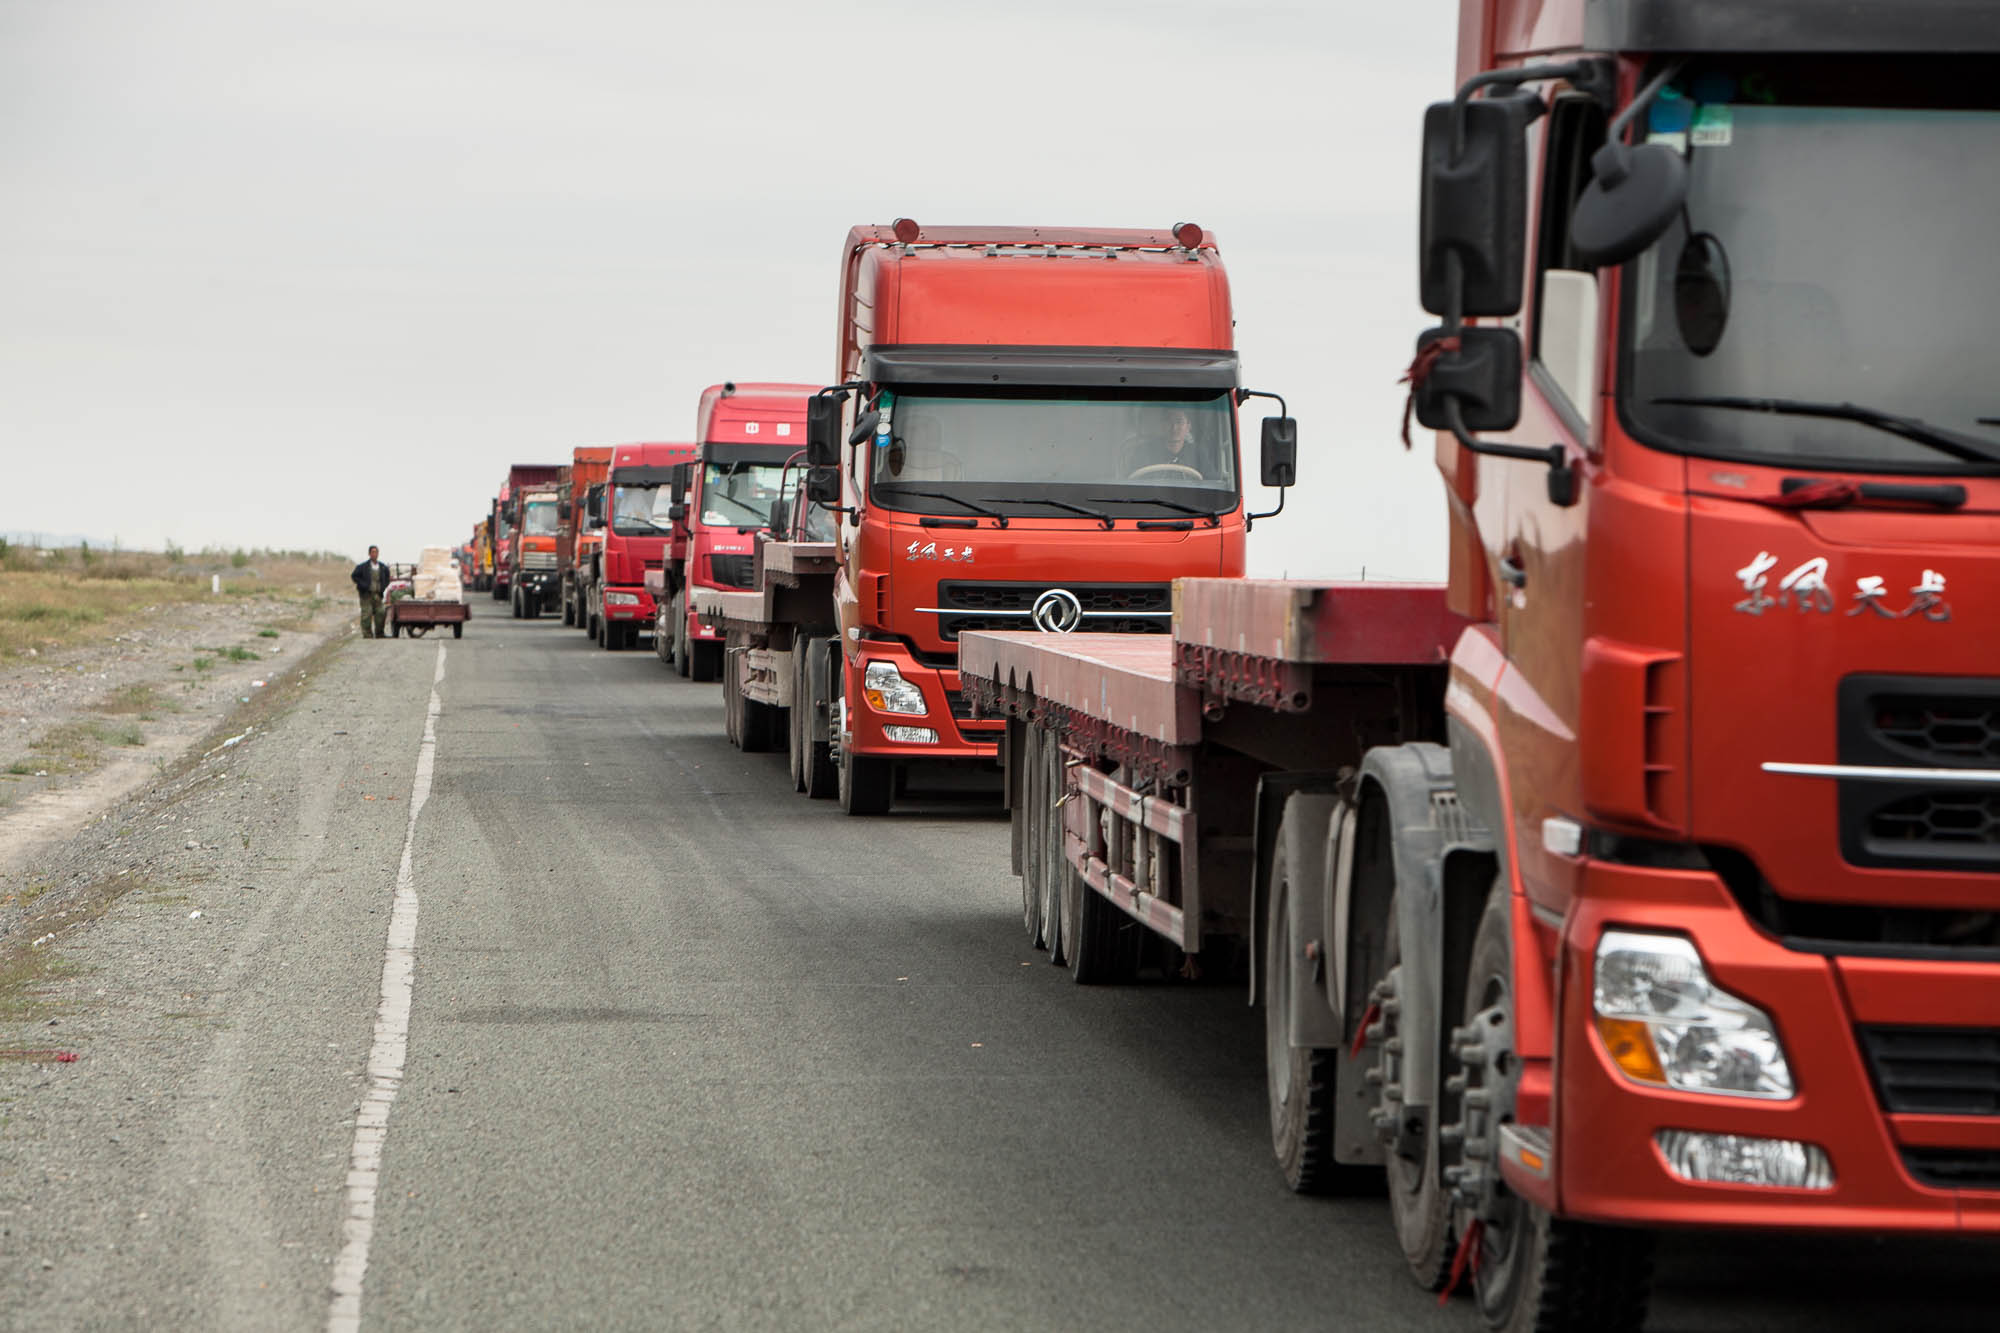 trucks in a traffic jam